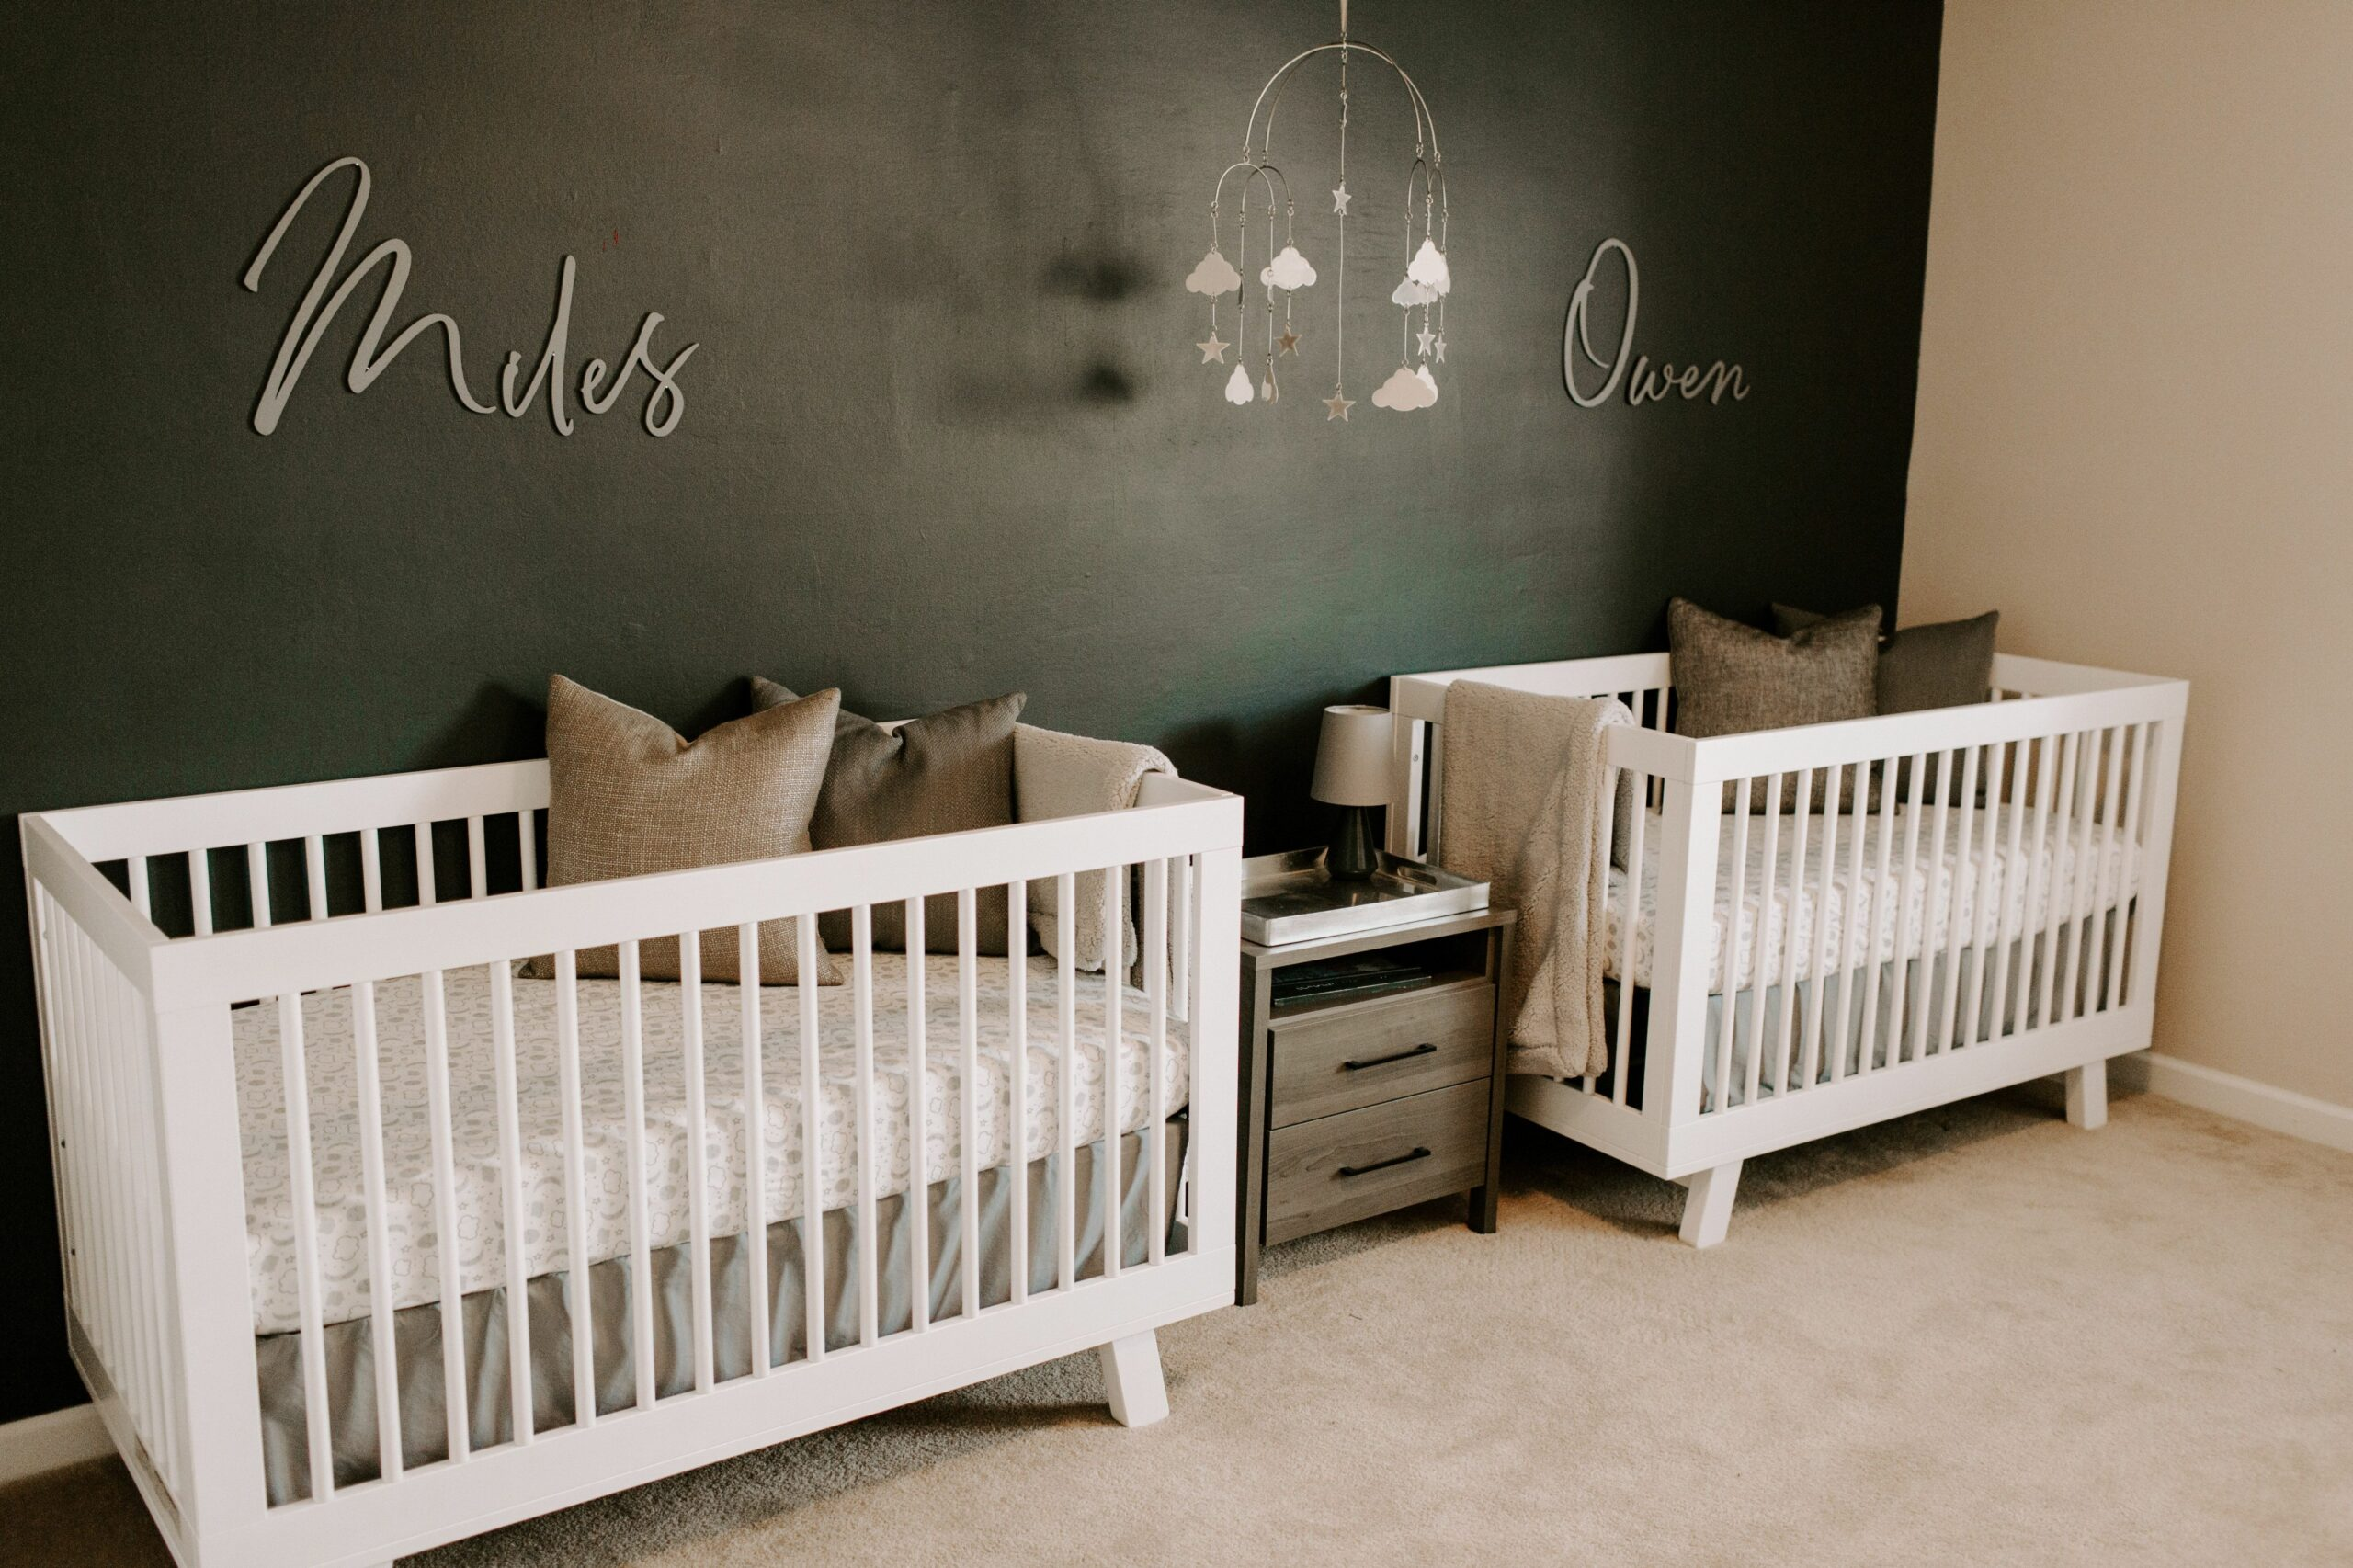 Nursery Name Sign for Baby Bedroom Wall Decor Wooden Letters Kids ..